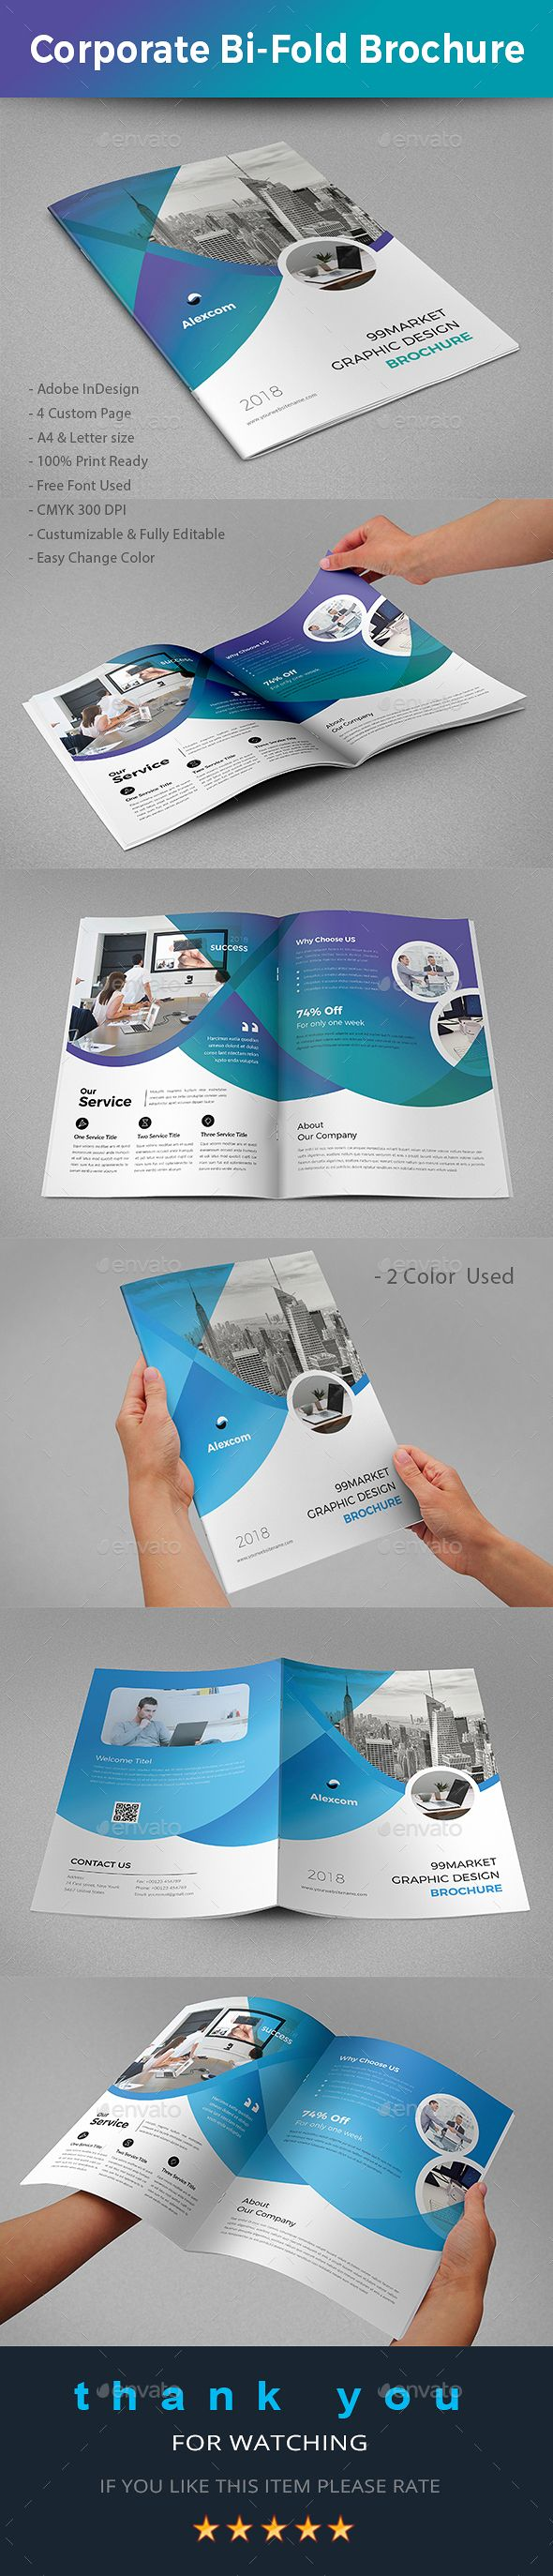 Corporate Bi-fold Brochure Template InDesign INDD - A4 & US Letter Size